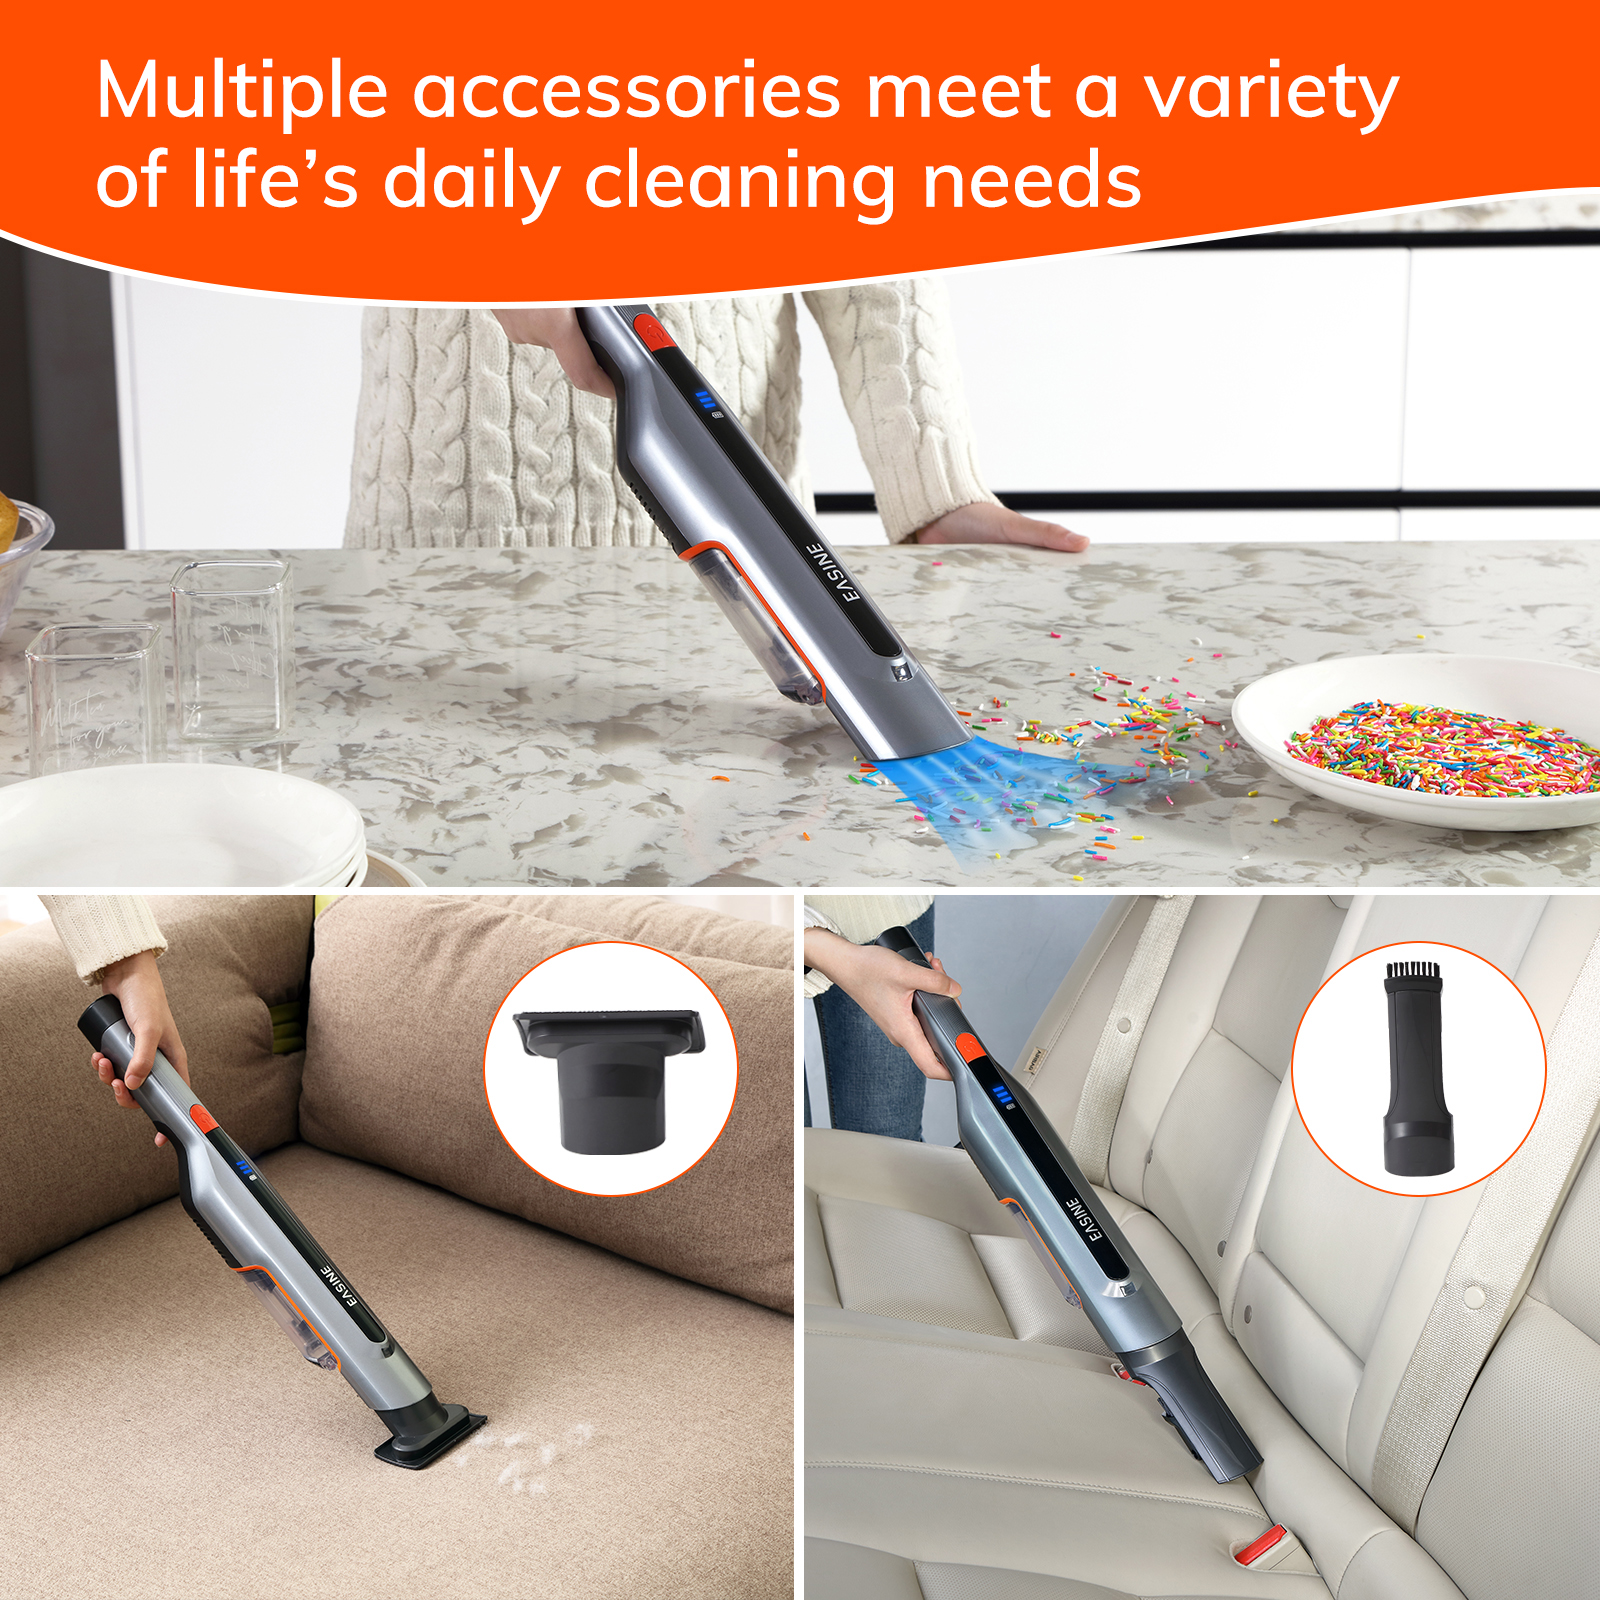 EASINE by ILIFE M50 Handheld Car Vacuum Cleaner – 14,500Pa Powerful Suction,  Type-C & USB Charging, 2 Hours Fast Charge 6